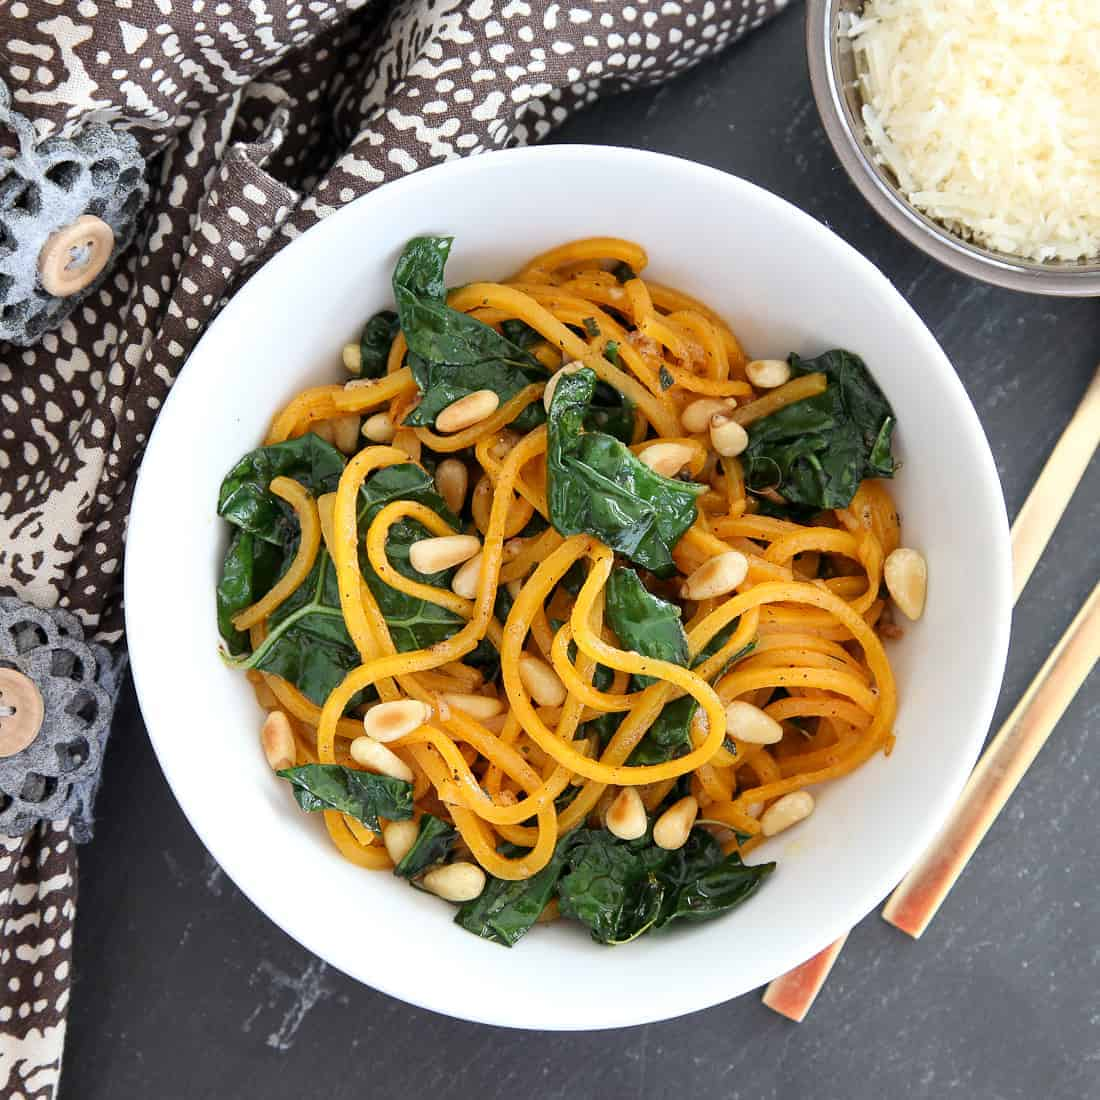 Butternut squash noodles with kale